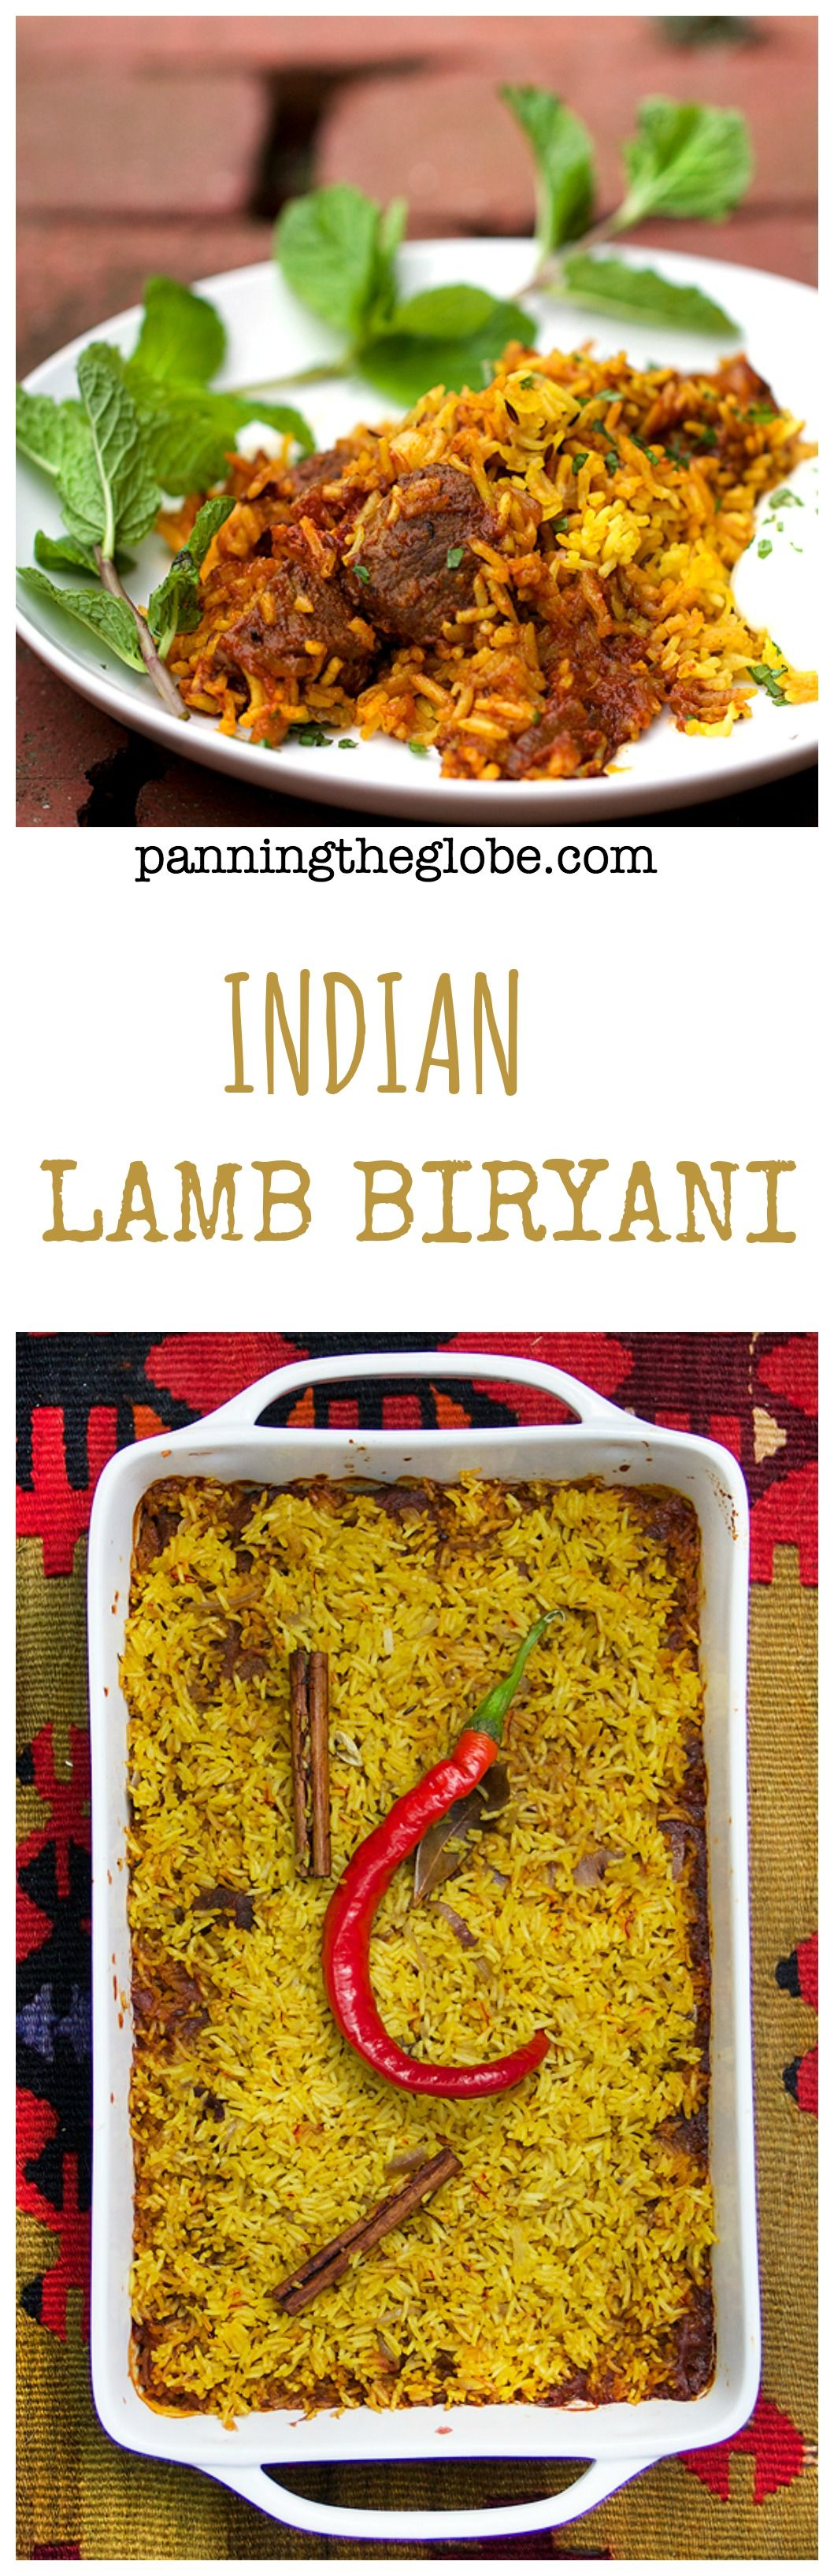 Pakistanische Küche Rezepte Indian Lamb Biryani Recipe Favorite Recipes